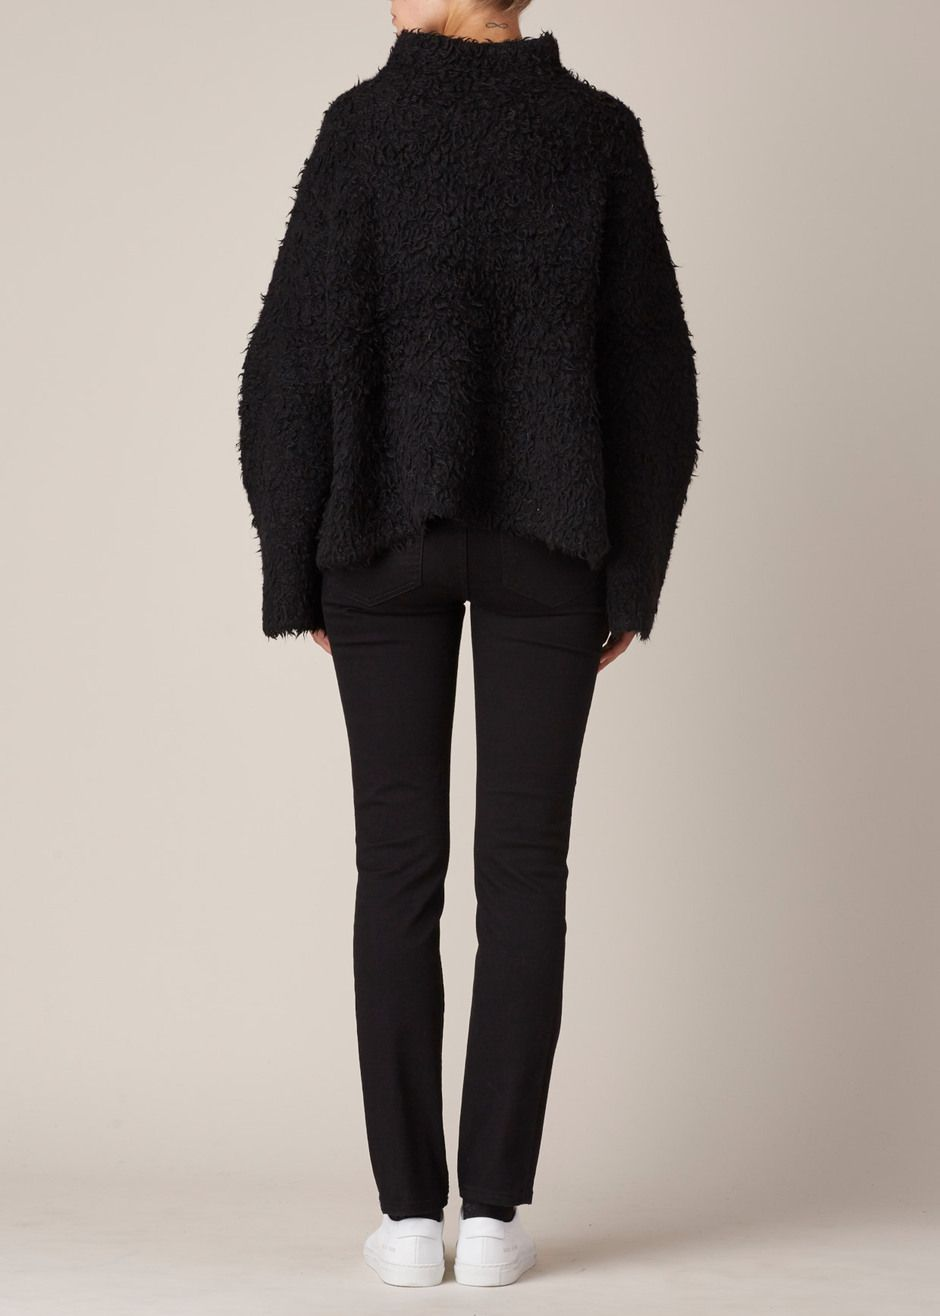 Lauren Manoogian Sherpa Pullover (Black) | FLY RAGS / STYLE ...